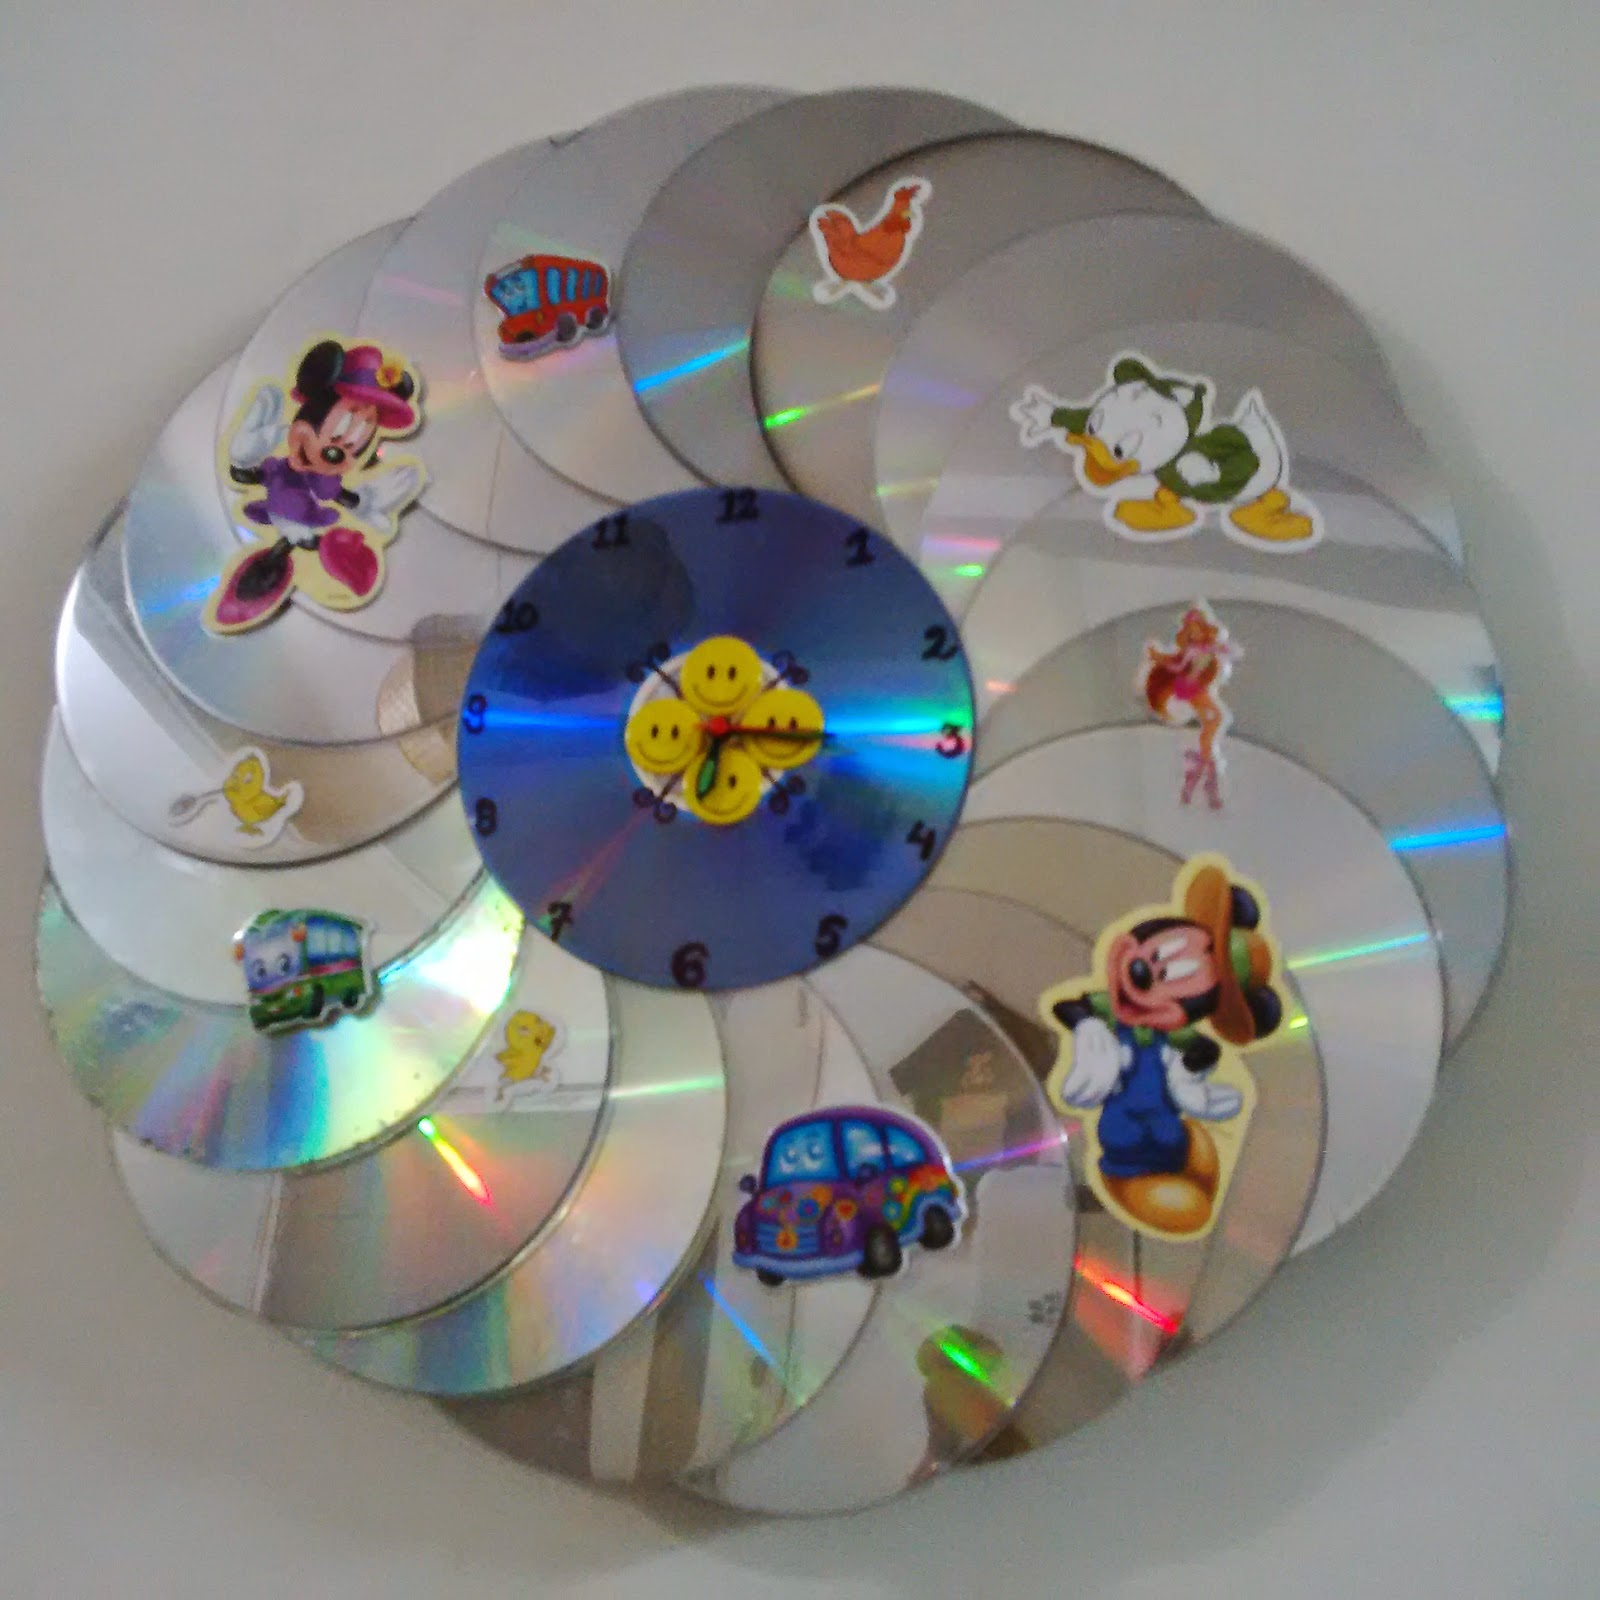 Please Do Try To Make This And Encourage Your Kids Reuse Of The CDs Instead Putting Them In Dustbin